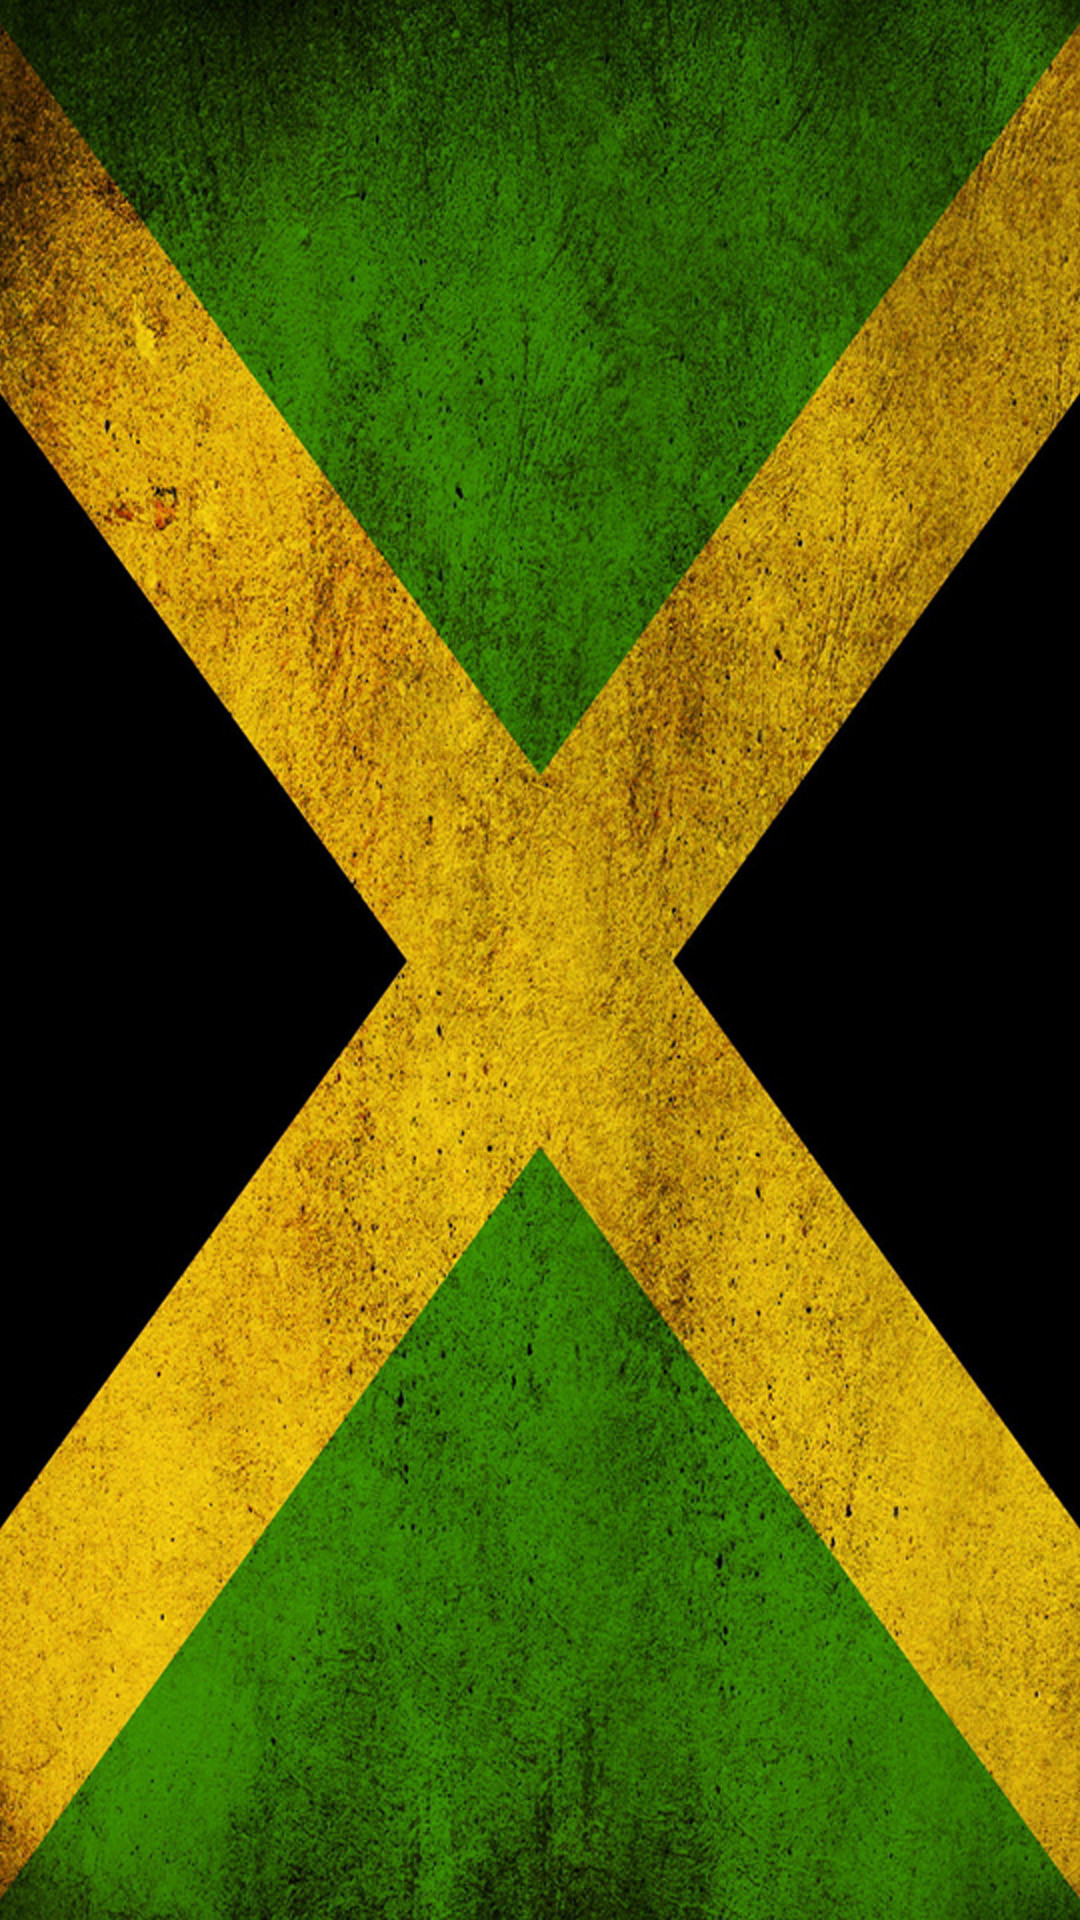 1080x1920 Jamaican Flag - High quality htc one wallpapers and abstract backgrounds  designed by the best and creative artists in the world.